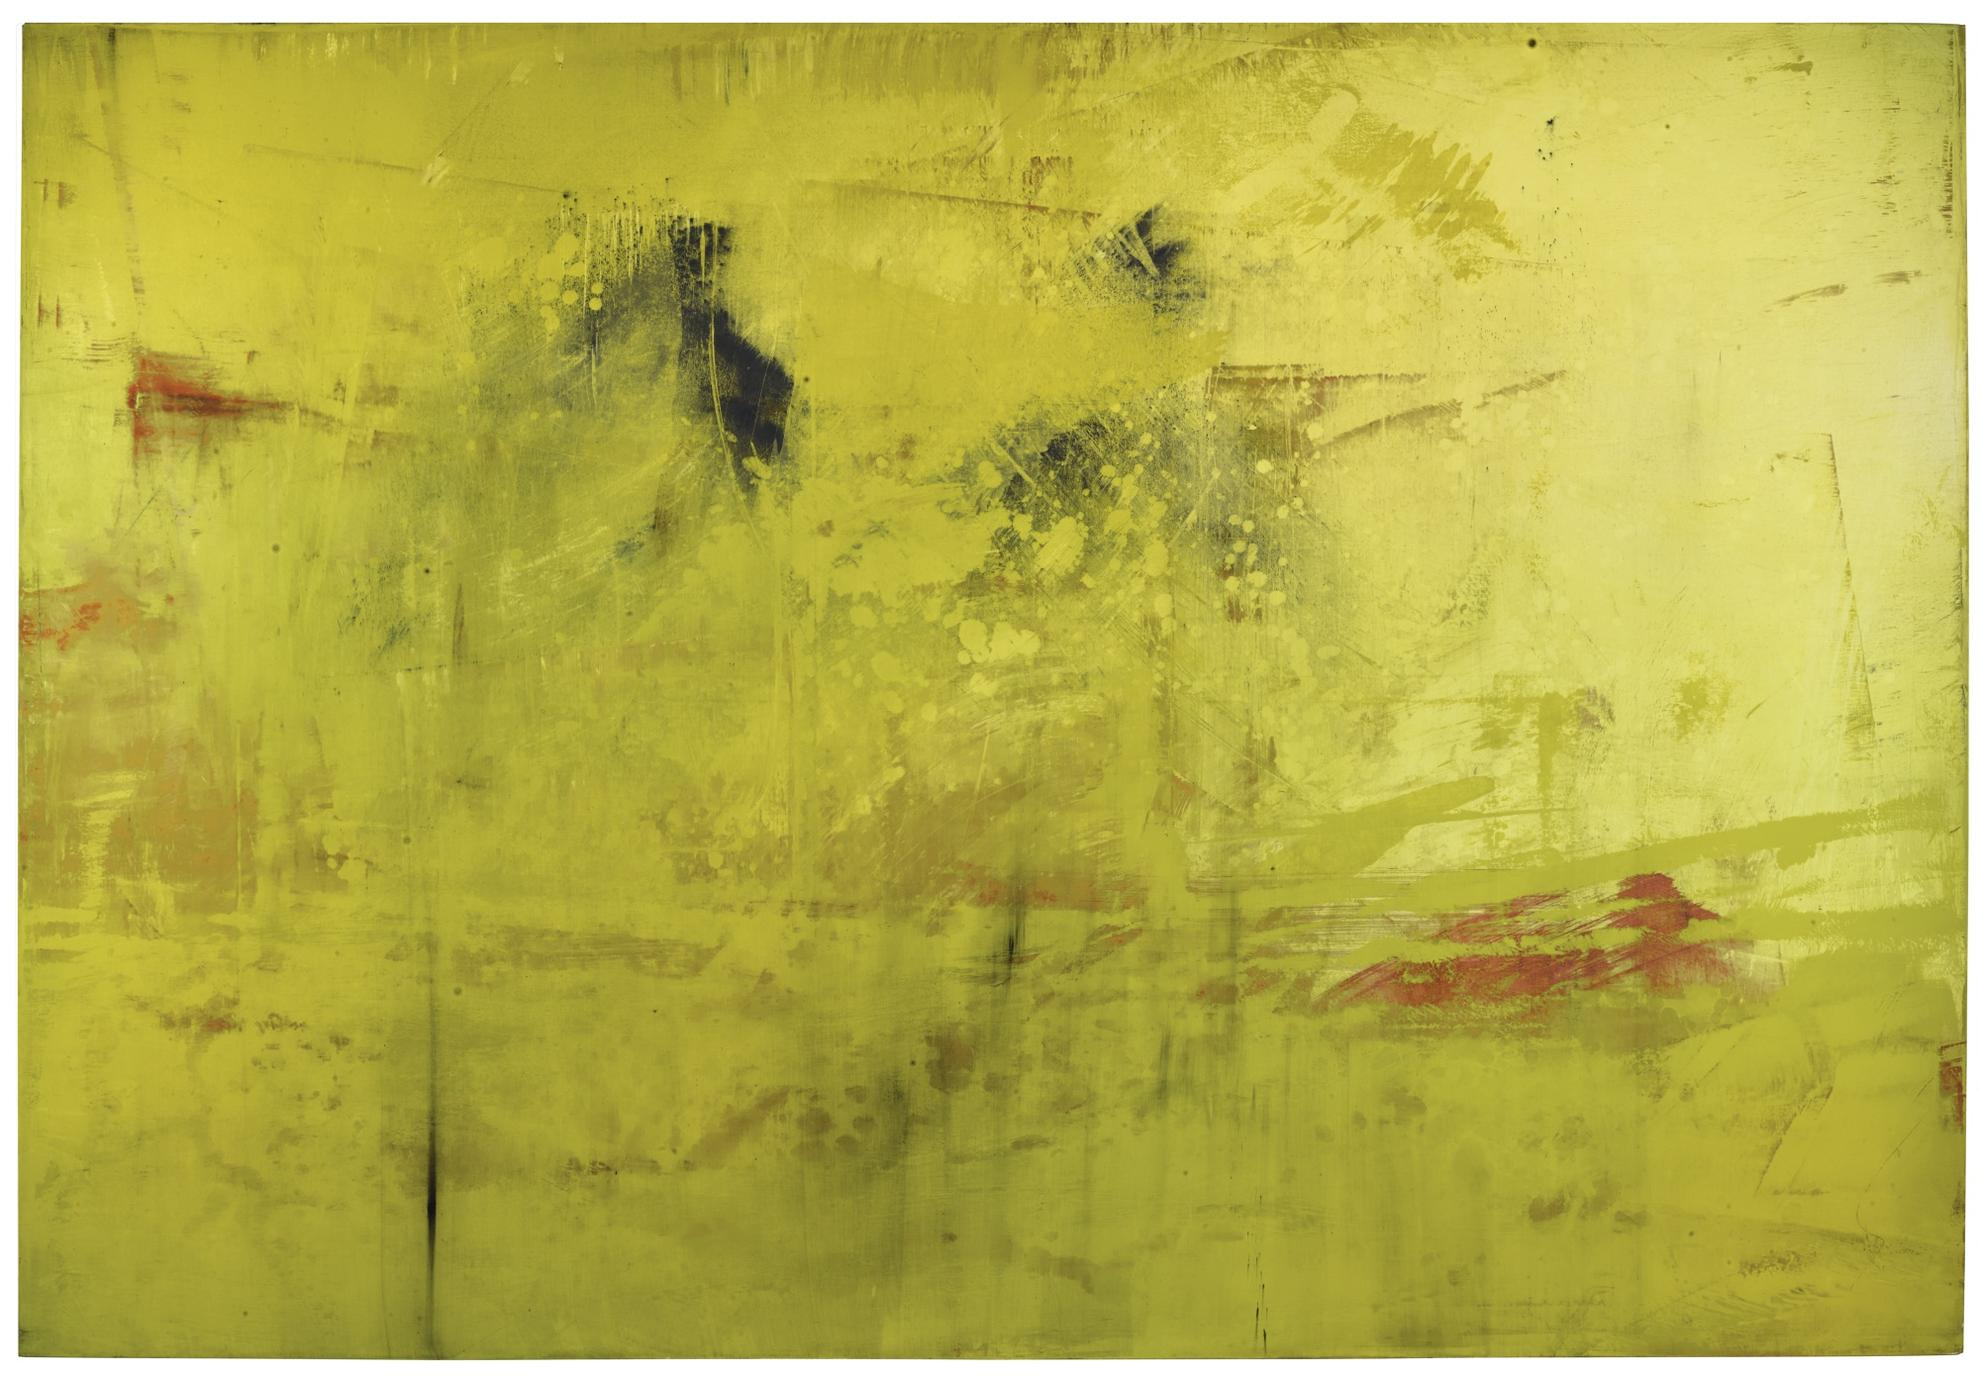 Hubert Scheibl-Yellow - Run-2010